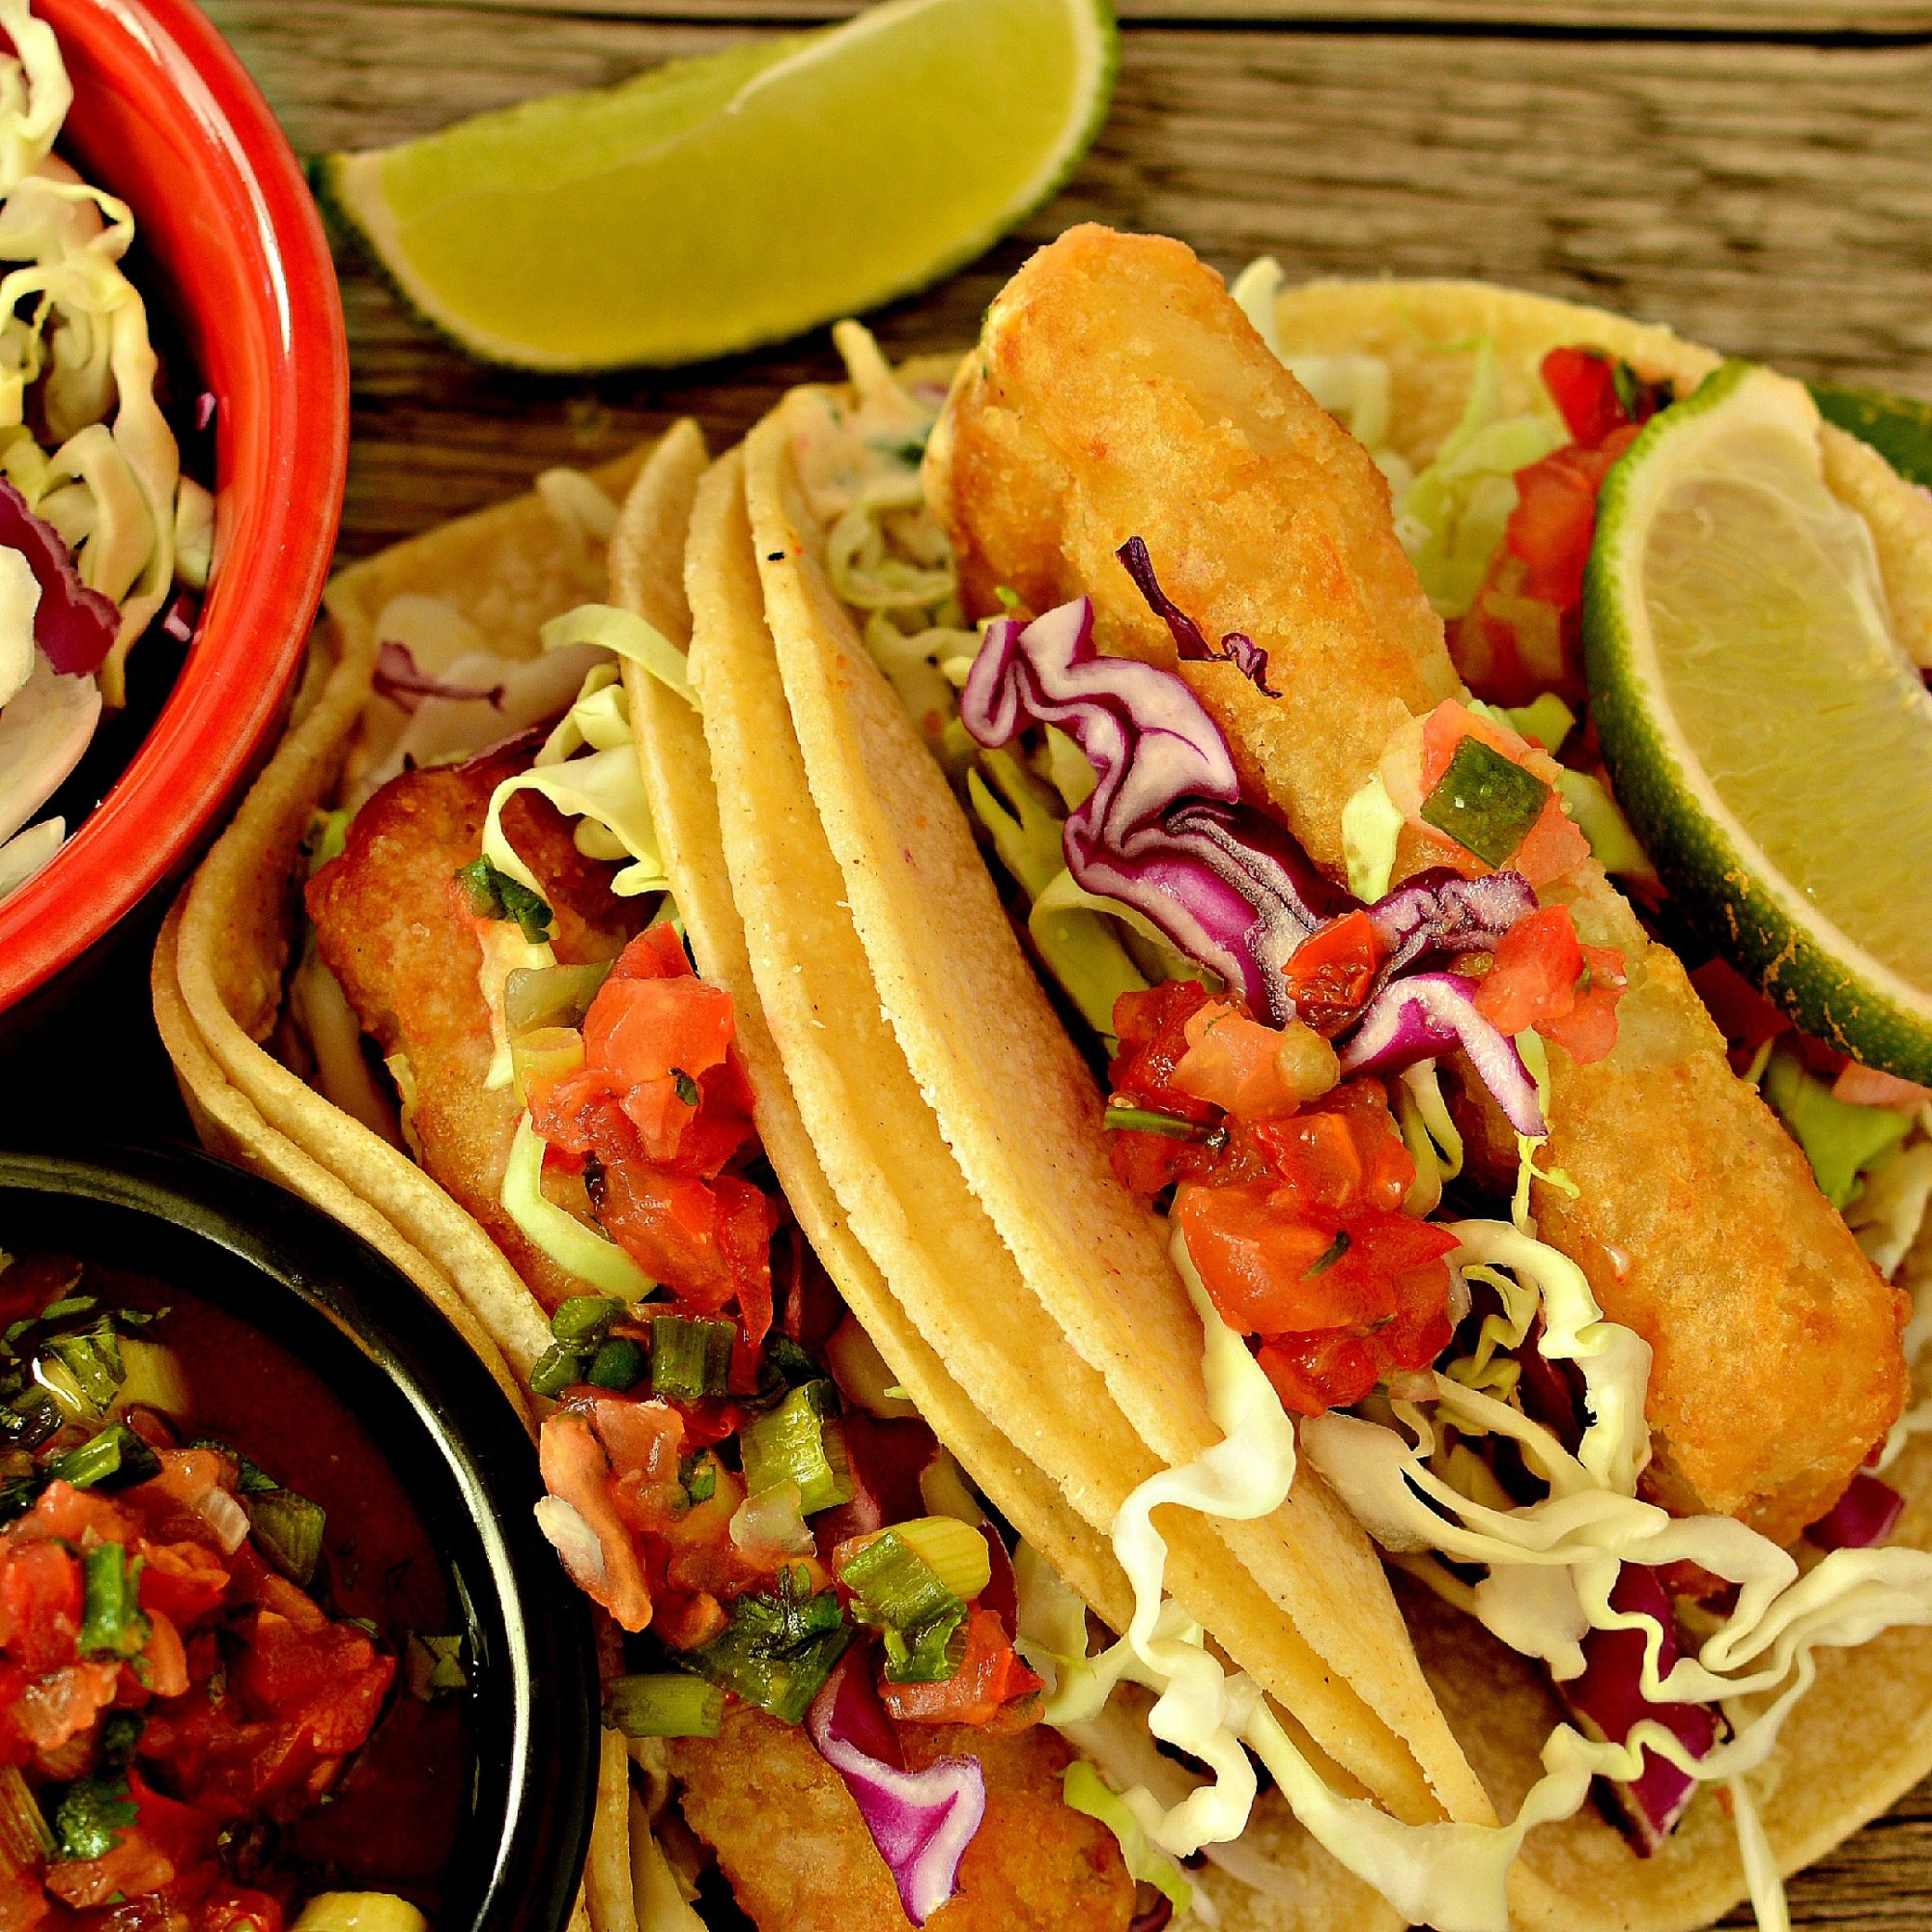 1456535_Wonderful Fried Fish Tacos_12759_Photo by bd.weld